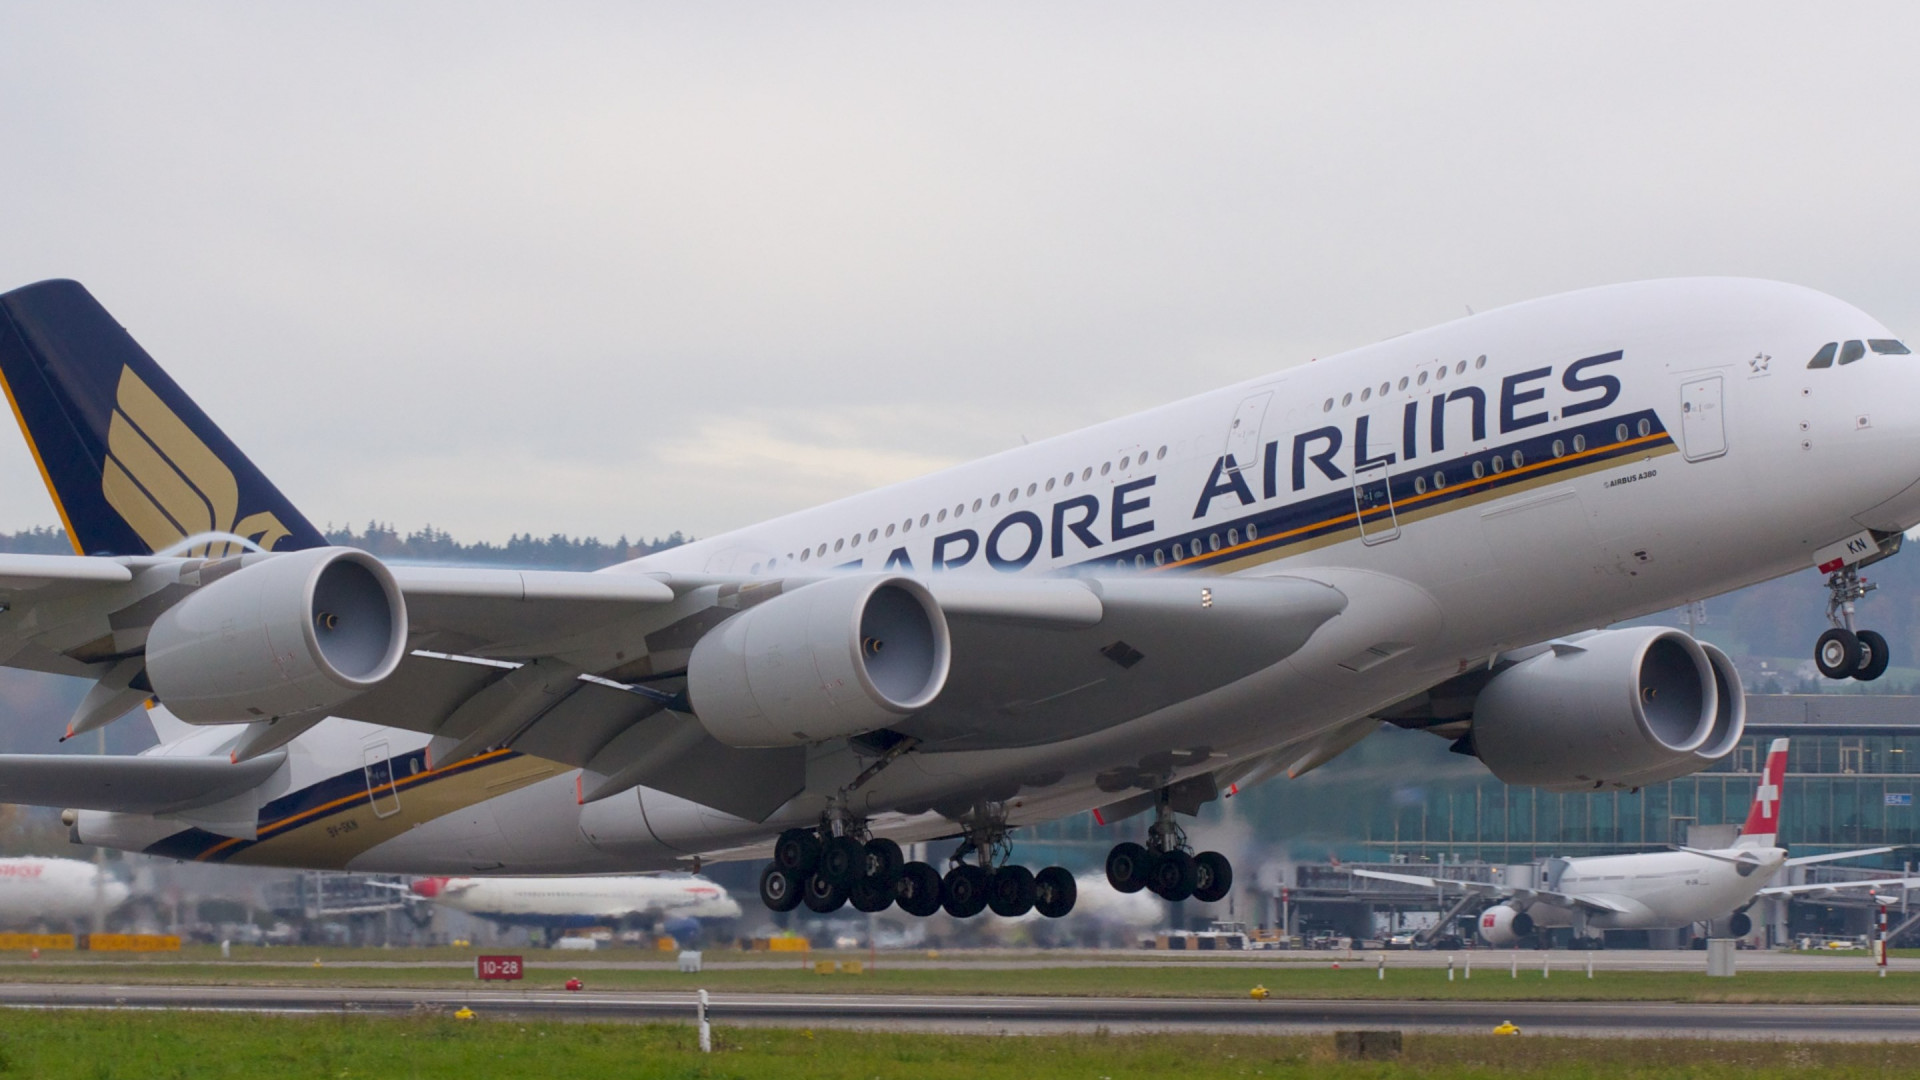 Passenger airplane from Singapore airlines wallpaper 1920x1080